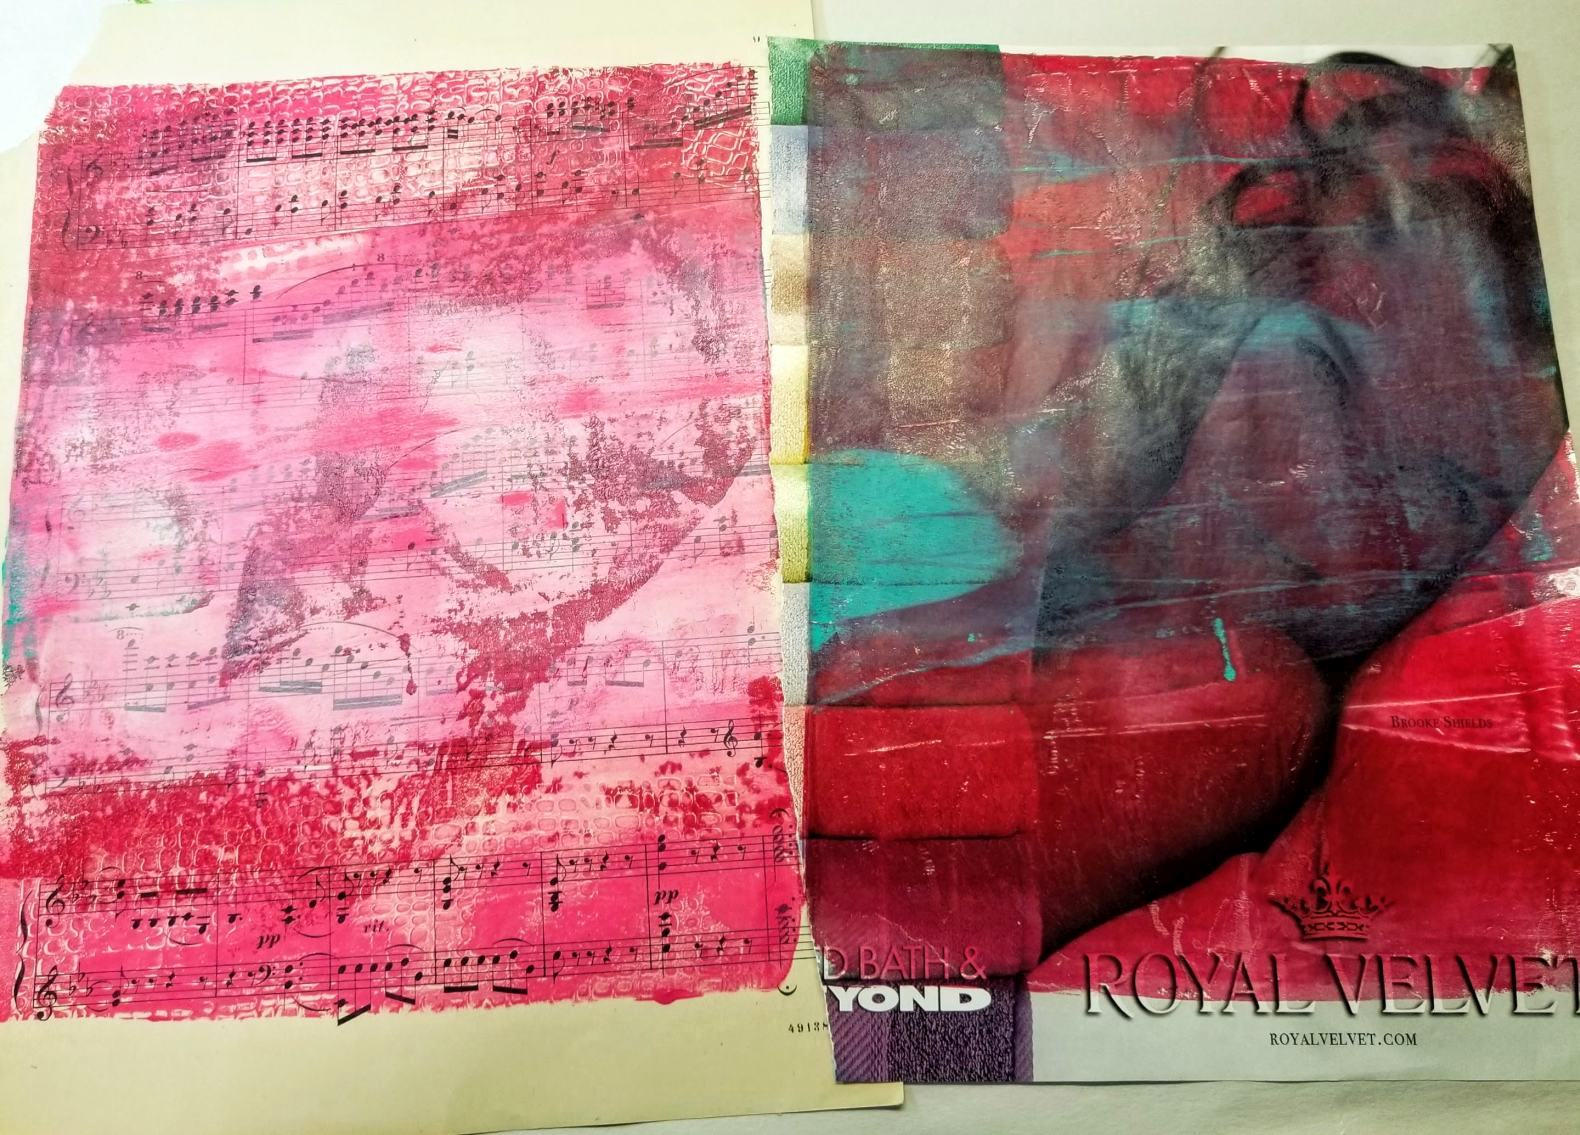 Right: Original magazine image with paint, Left: Just a hint of the image transfer